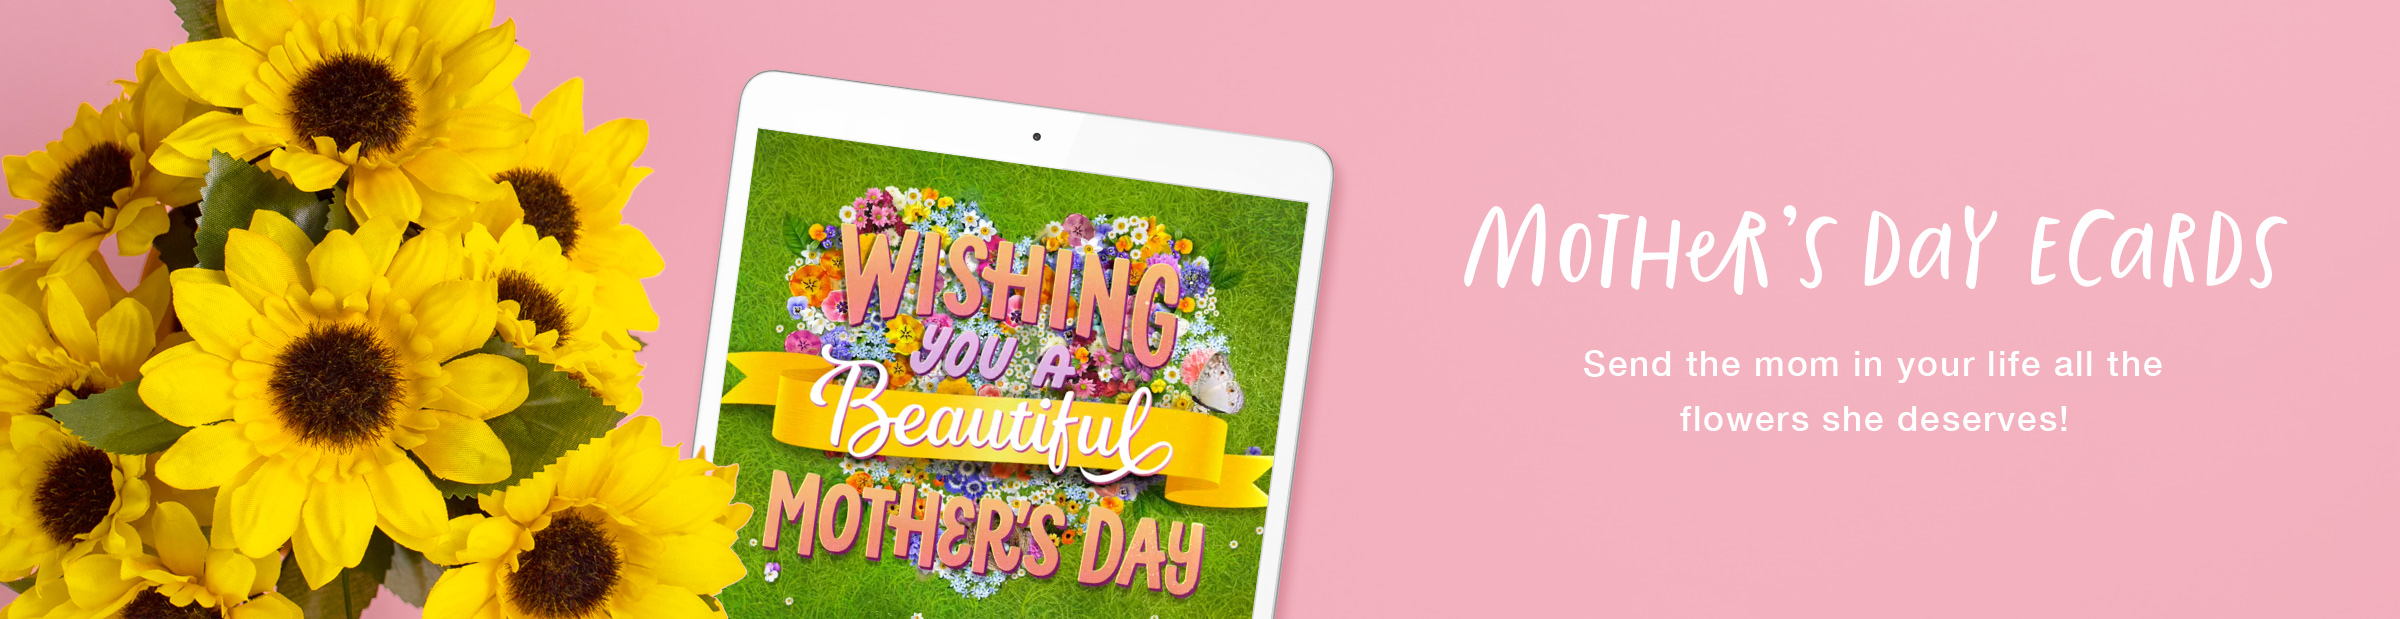 Mother's Day Ecards Banner